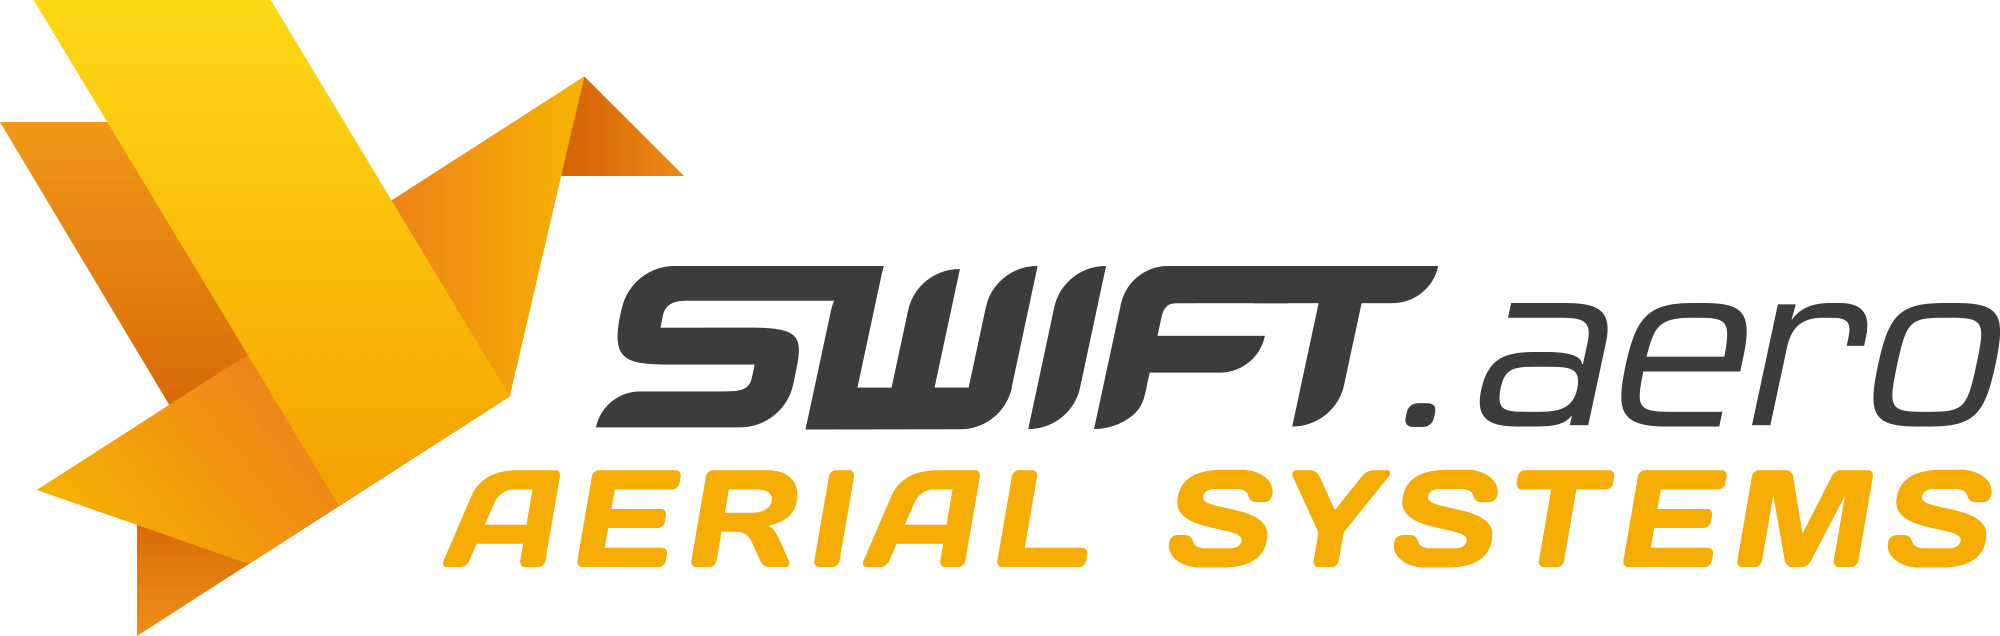 Swift Aero aerial systems receive permission to fly in Class Bravo airspace